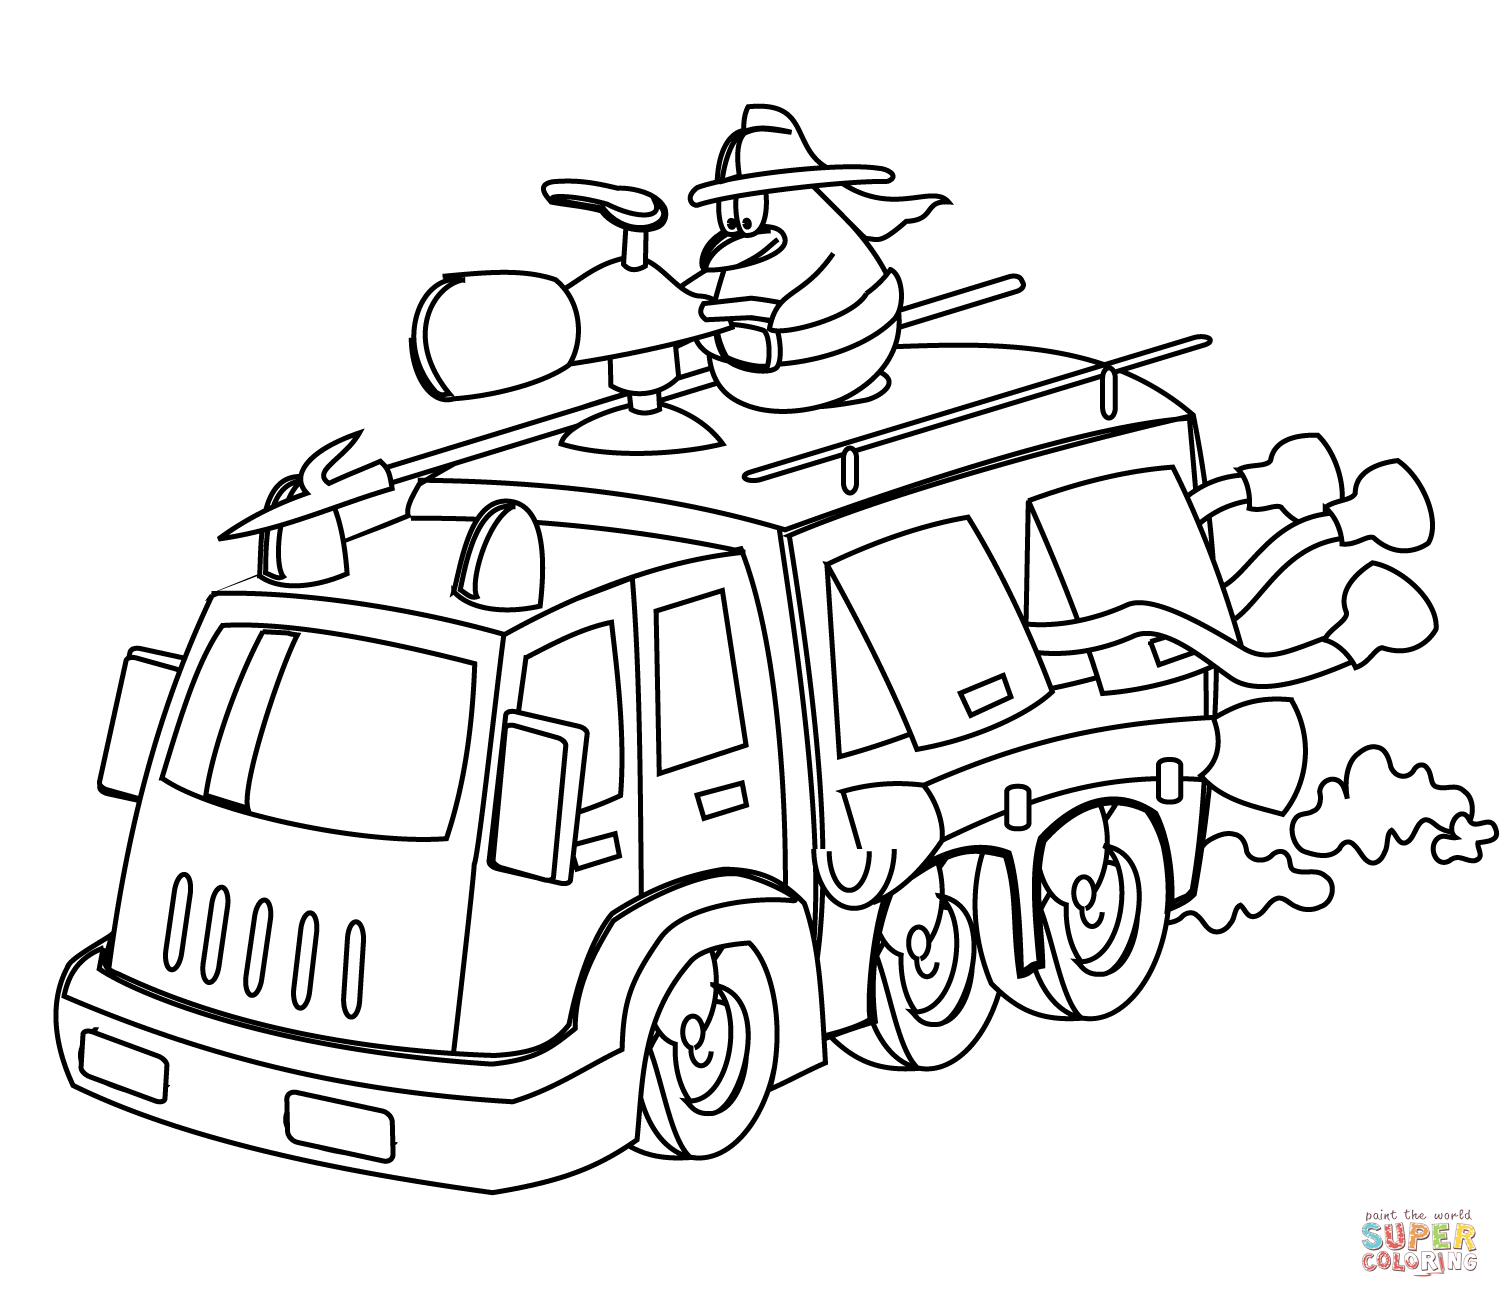 Fire Truck clipart coloring page Truck Cartoon Fire Coloring page